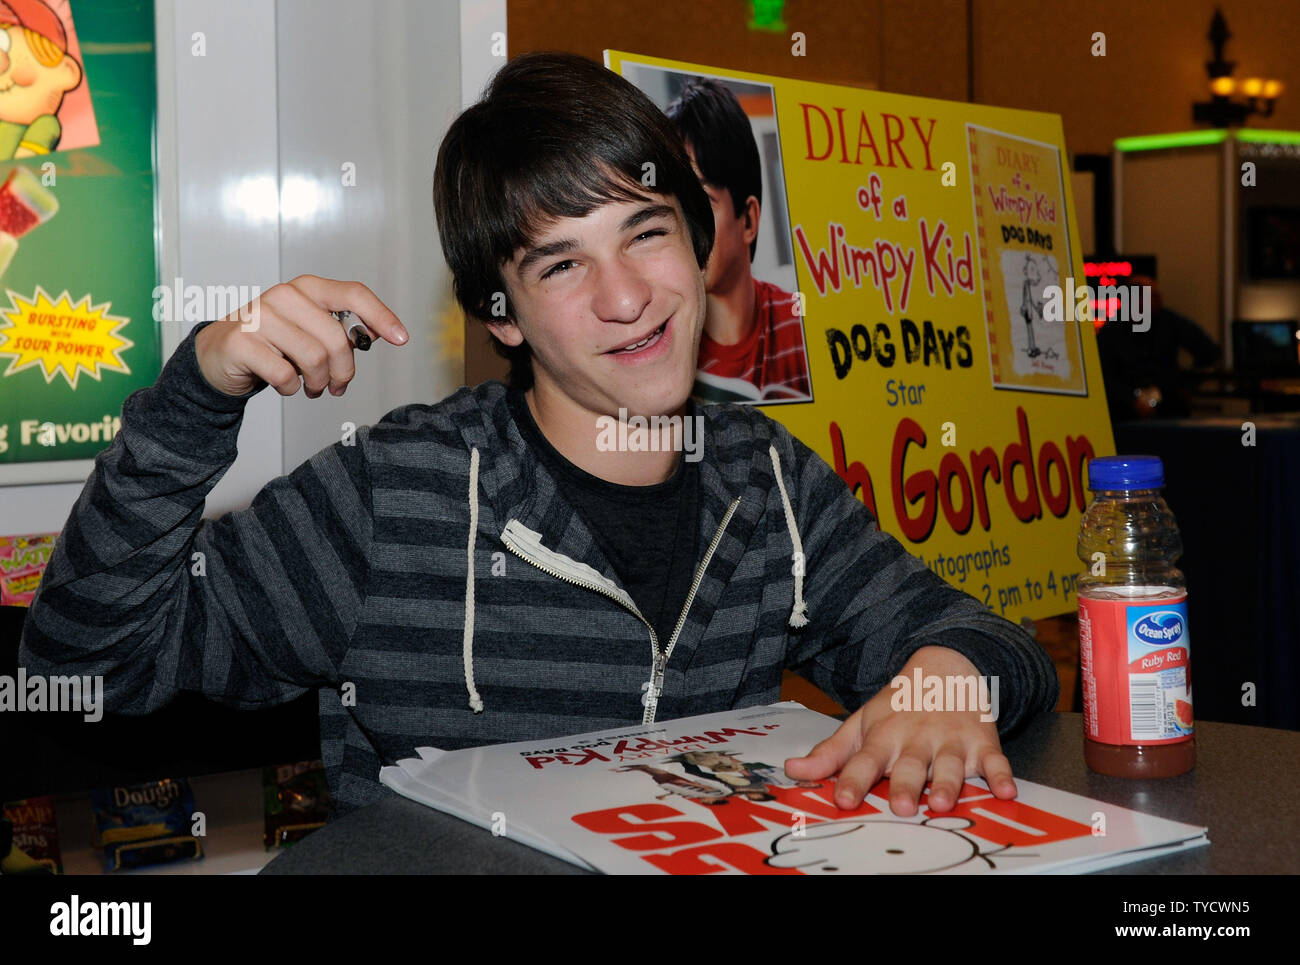 Diary Of A Wimpy Kid High Resolution Stock Photography And Images Alamy